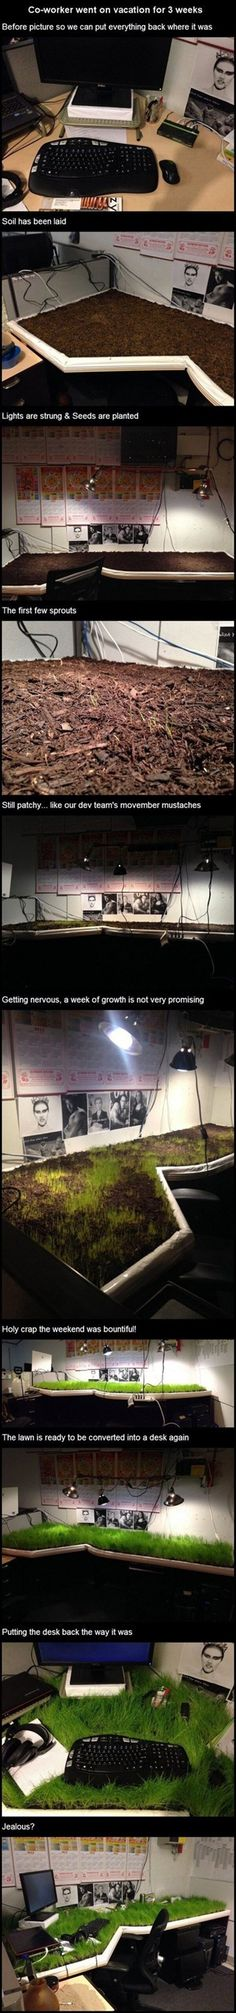 This could quite possibly be the most creative eco-friendly geek prank ever.